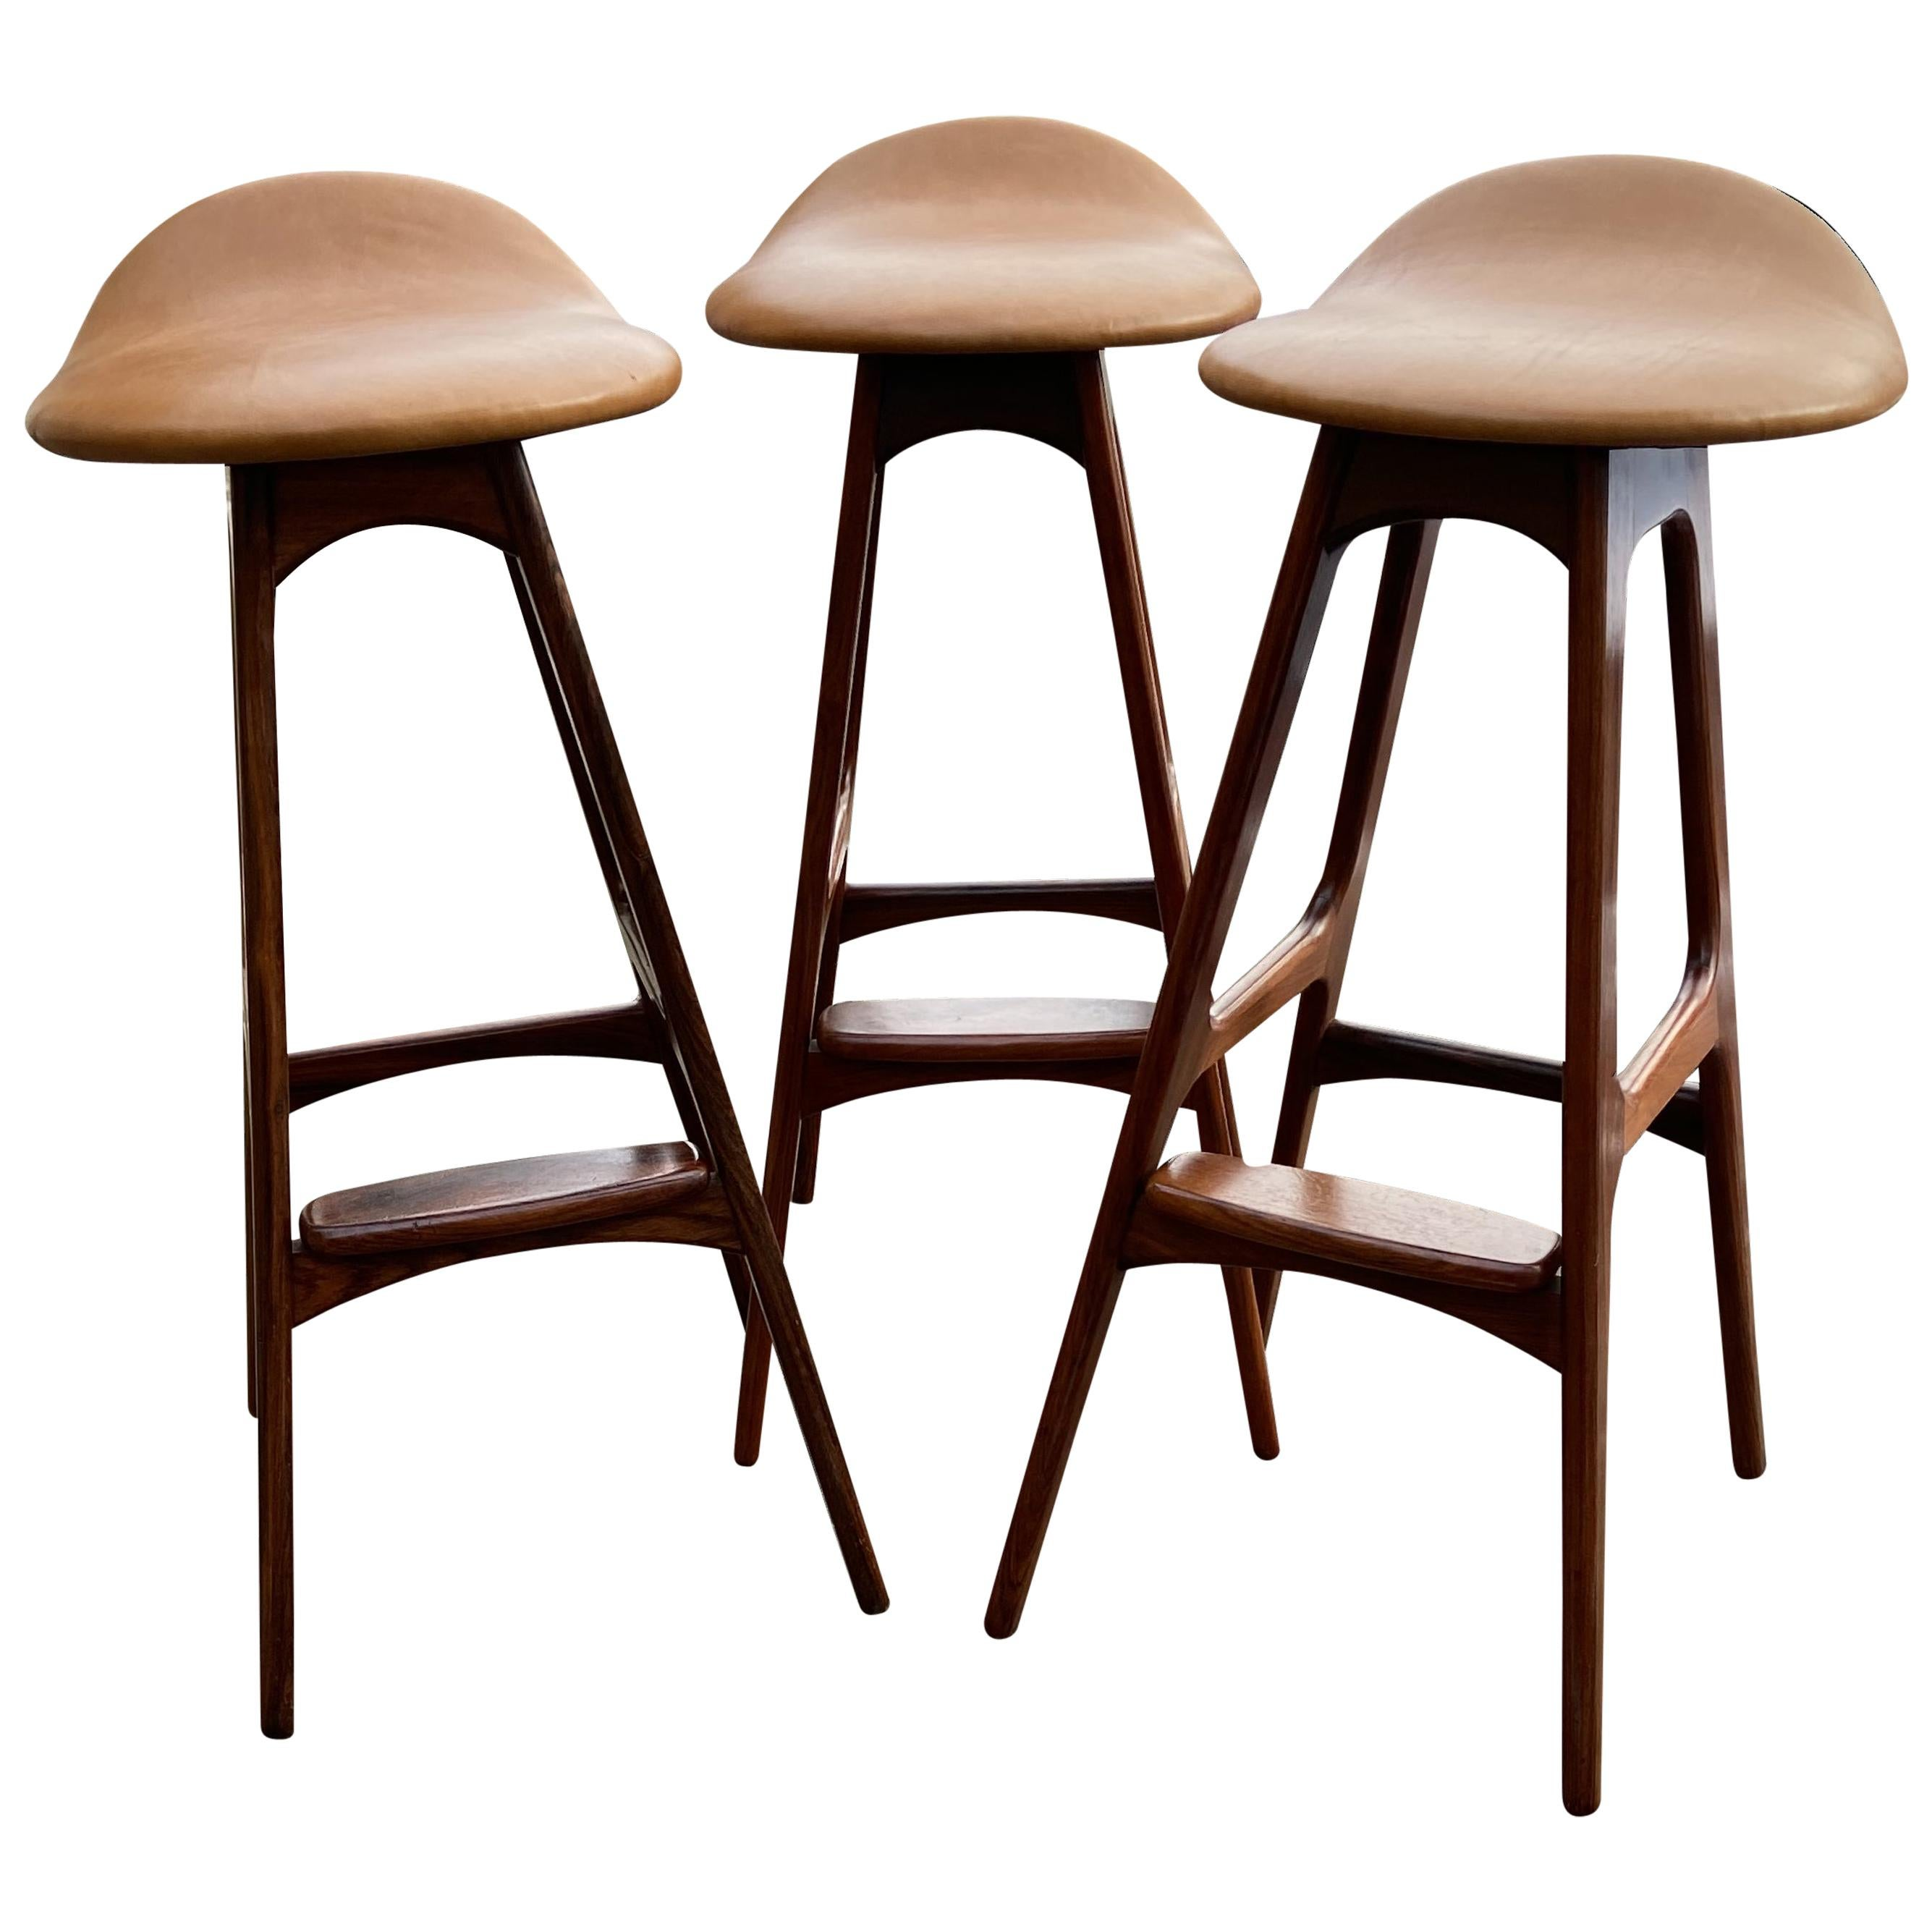 Set of Three Barstools by Erik Buch for O.D. Mobler